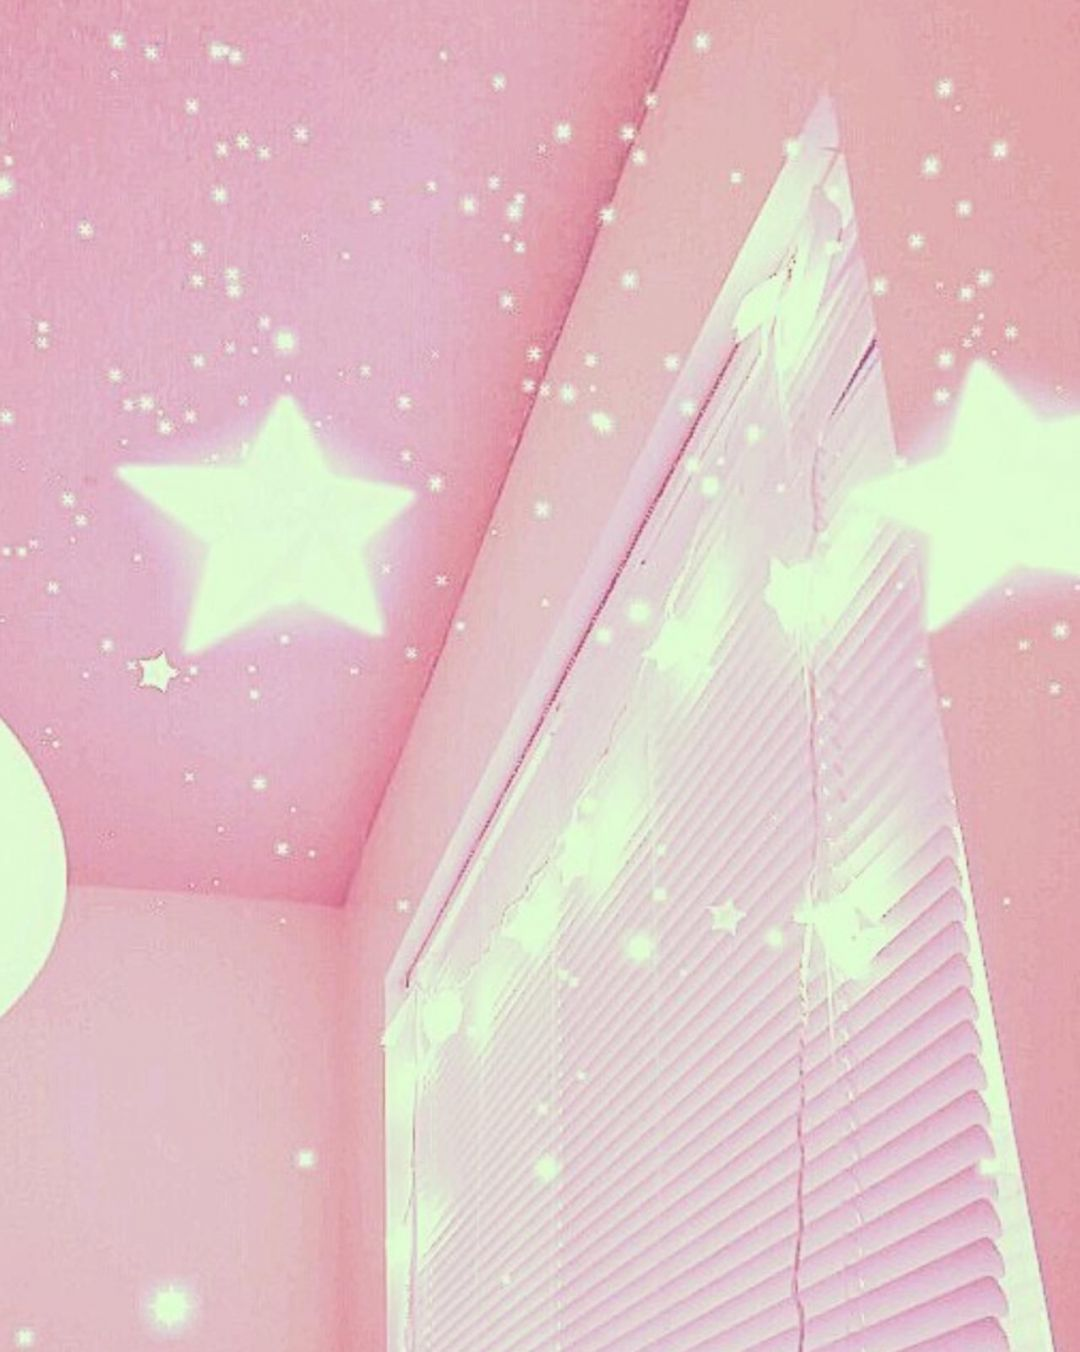 140+ Aesthetic Pink - Android, iPhone, Desktop HD ...